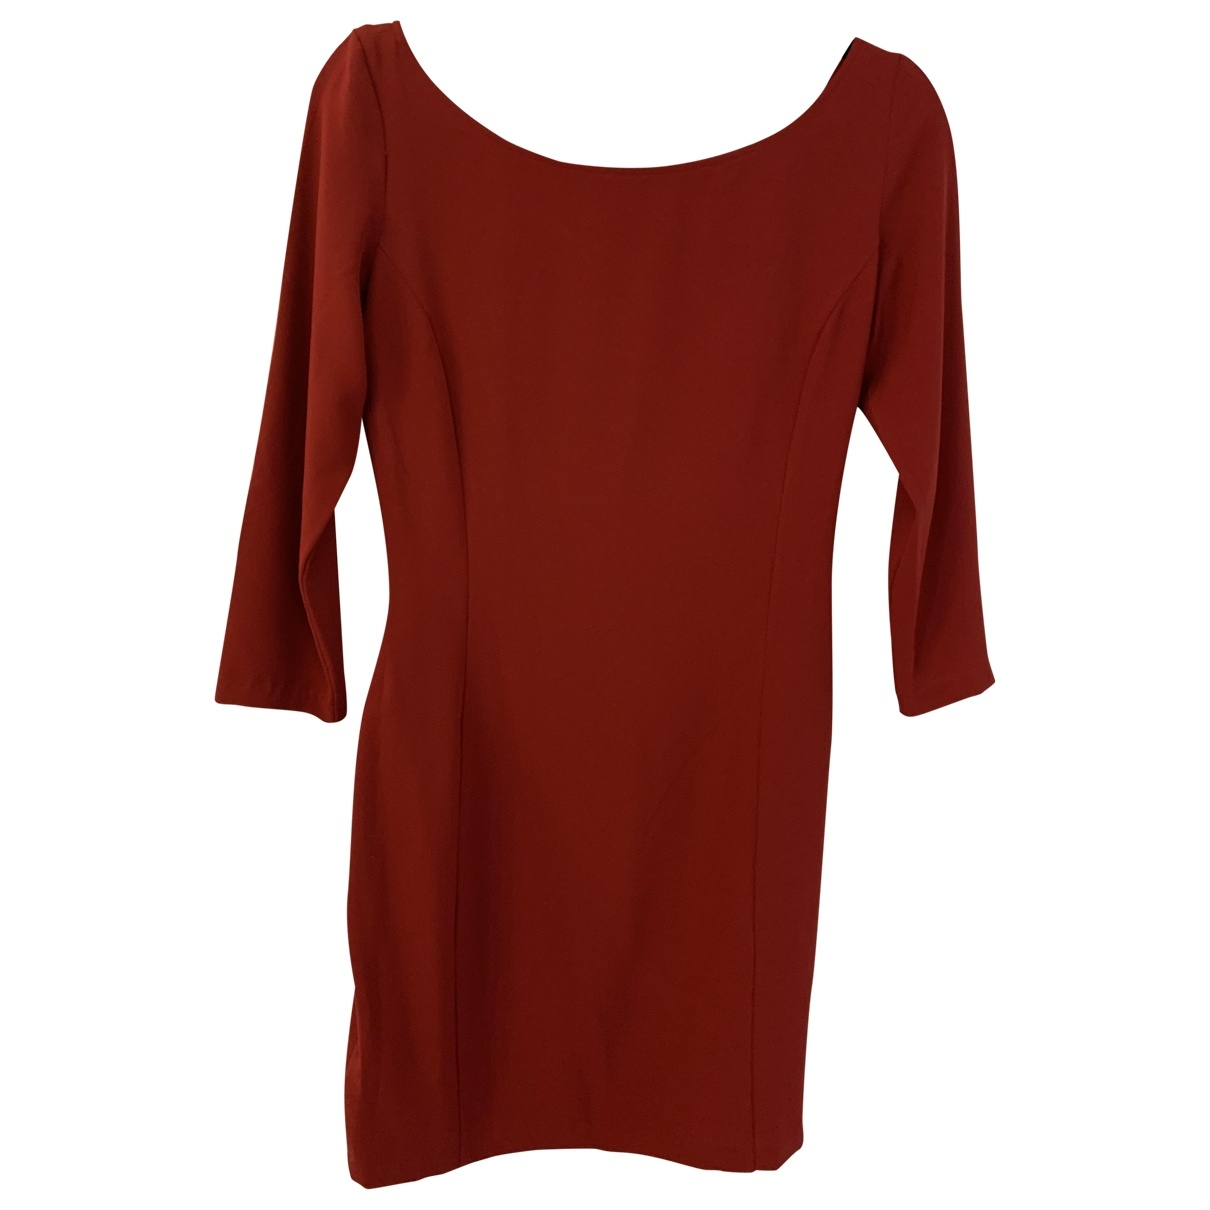 Guess \N Kleid in  Rot Polyester